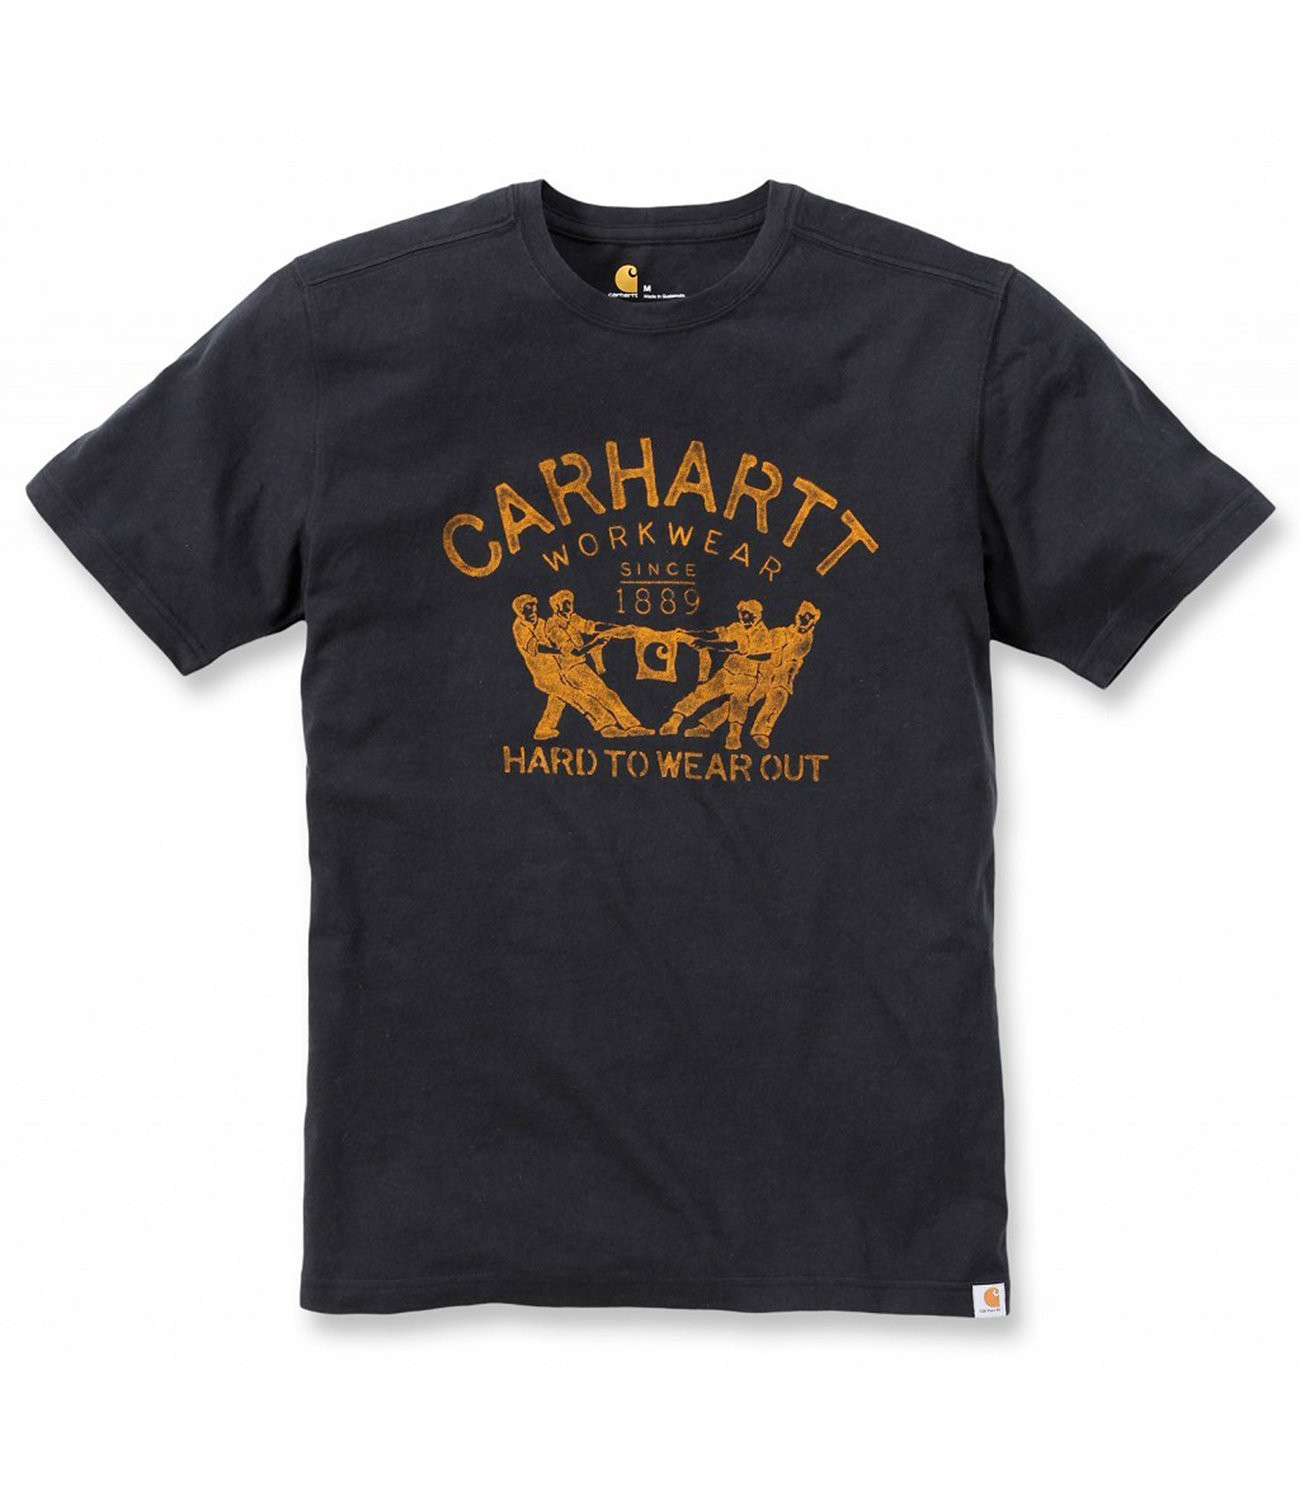 Футболка Carhartt Hard To Wear Out Graphic T-Shirt S/S - 102097 (Black, S)